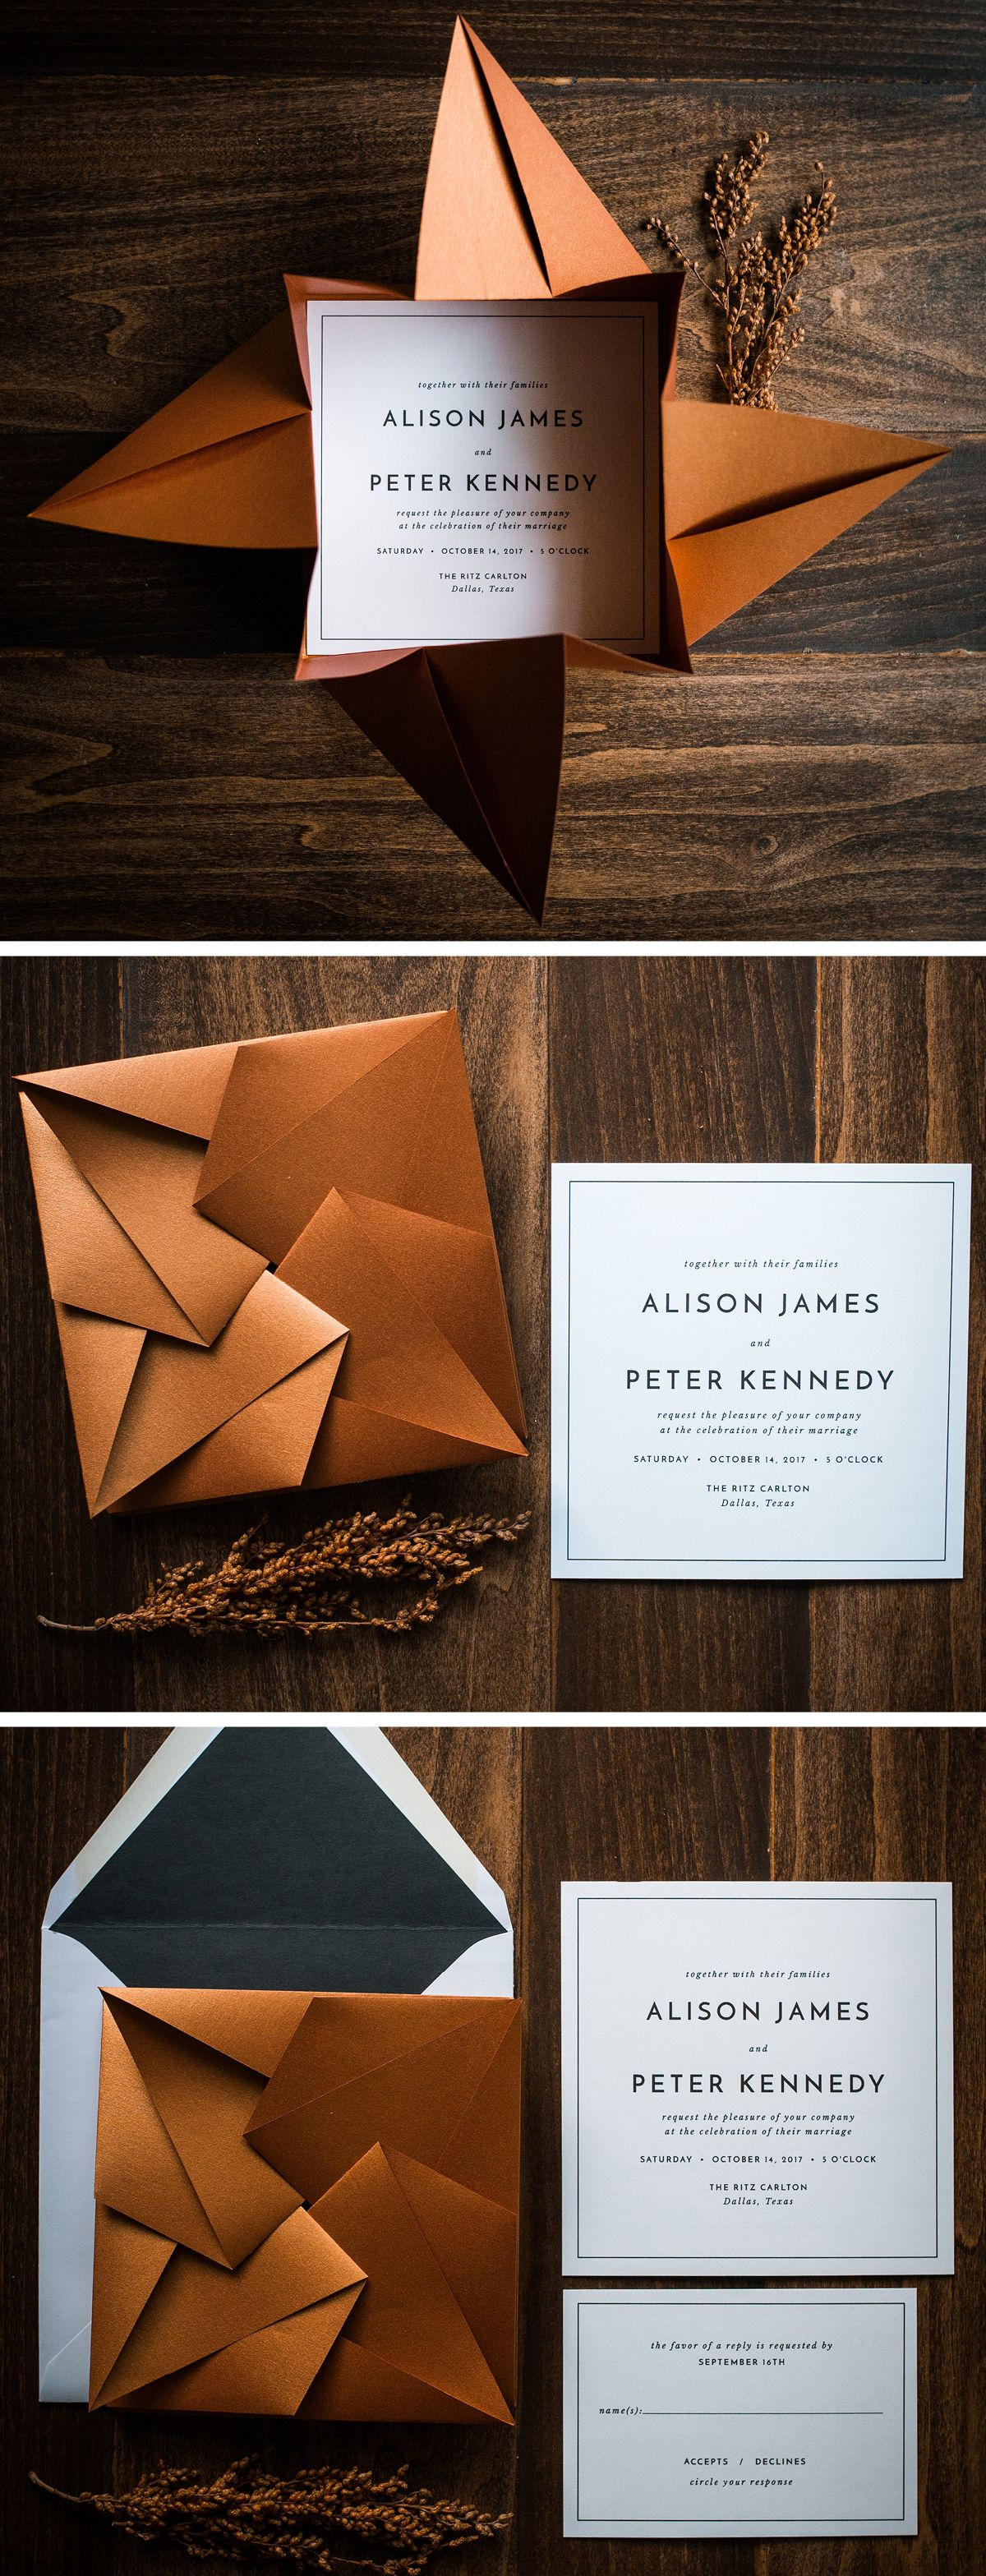 Unique Origami Wedding Invitation by Penn u0026